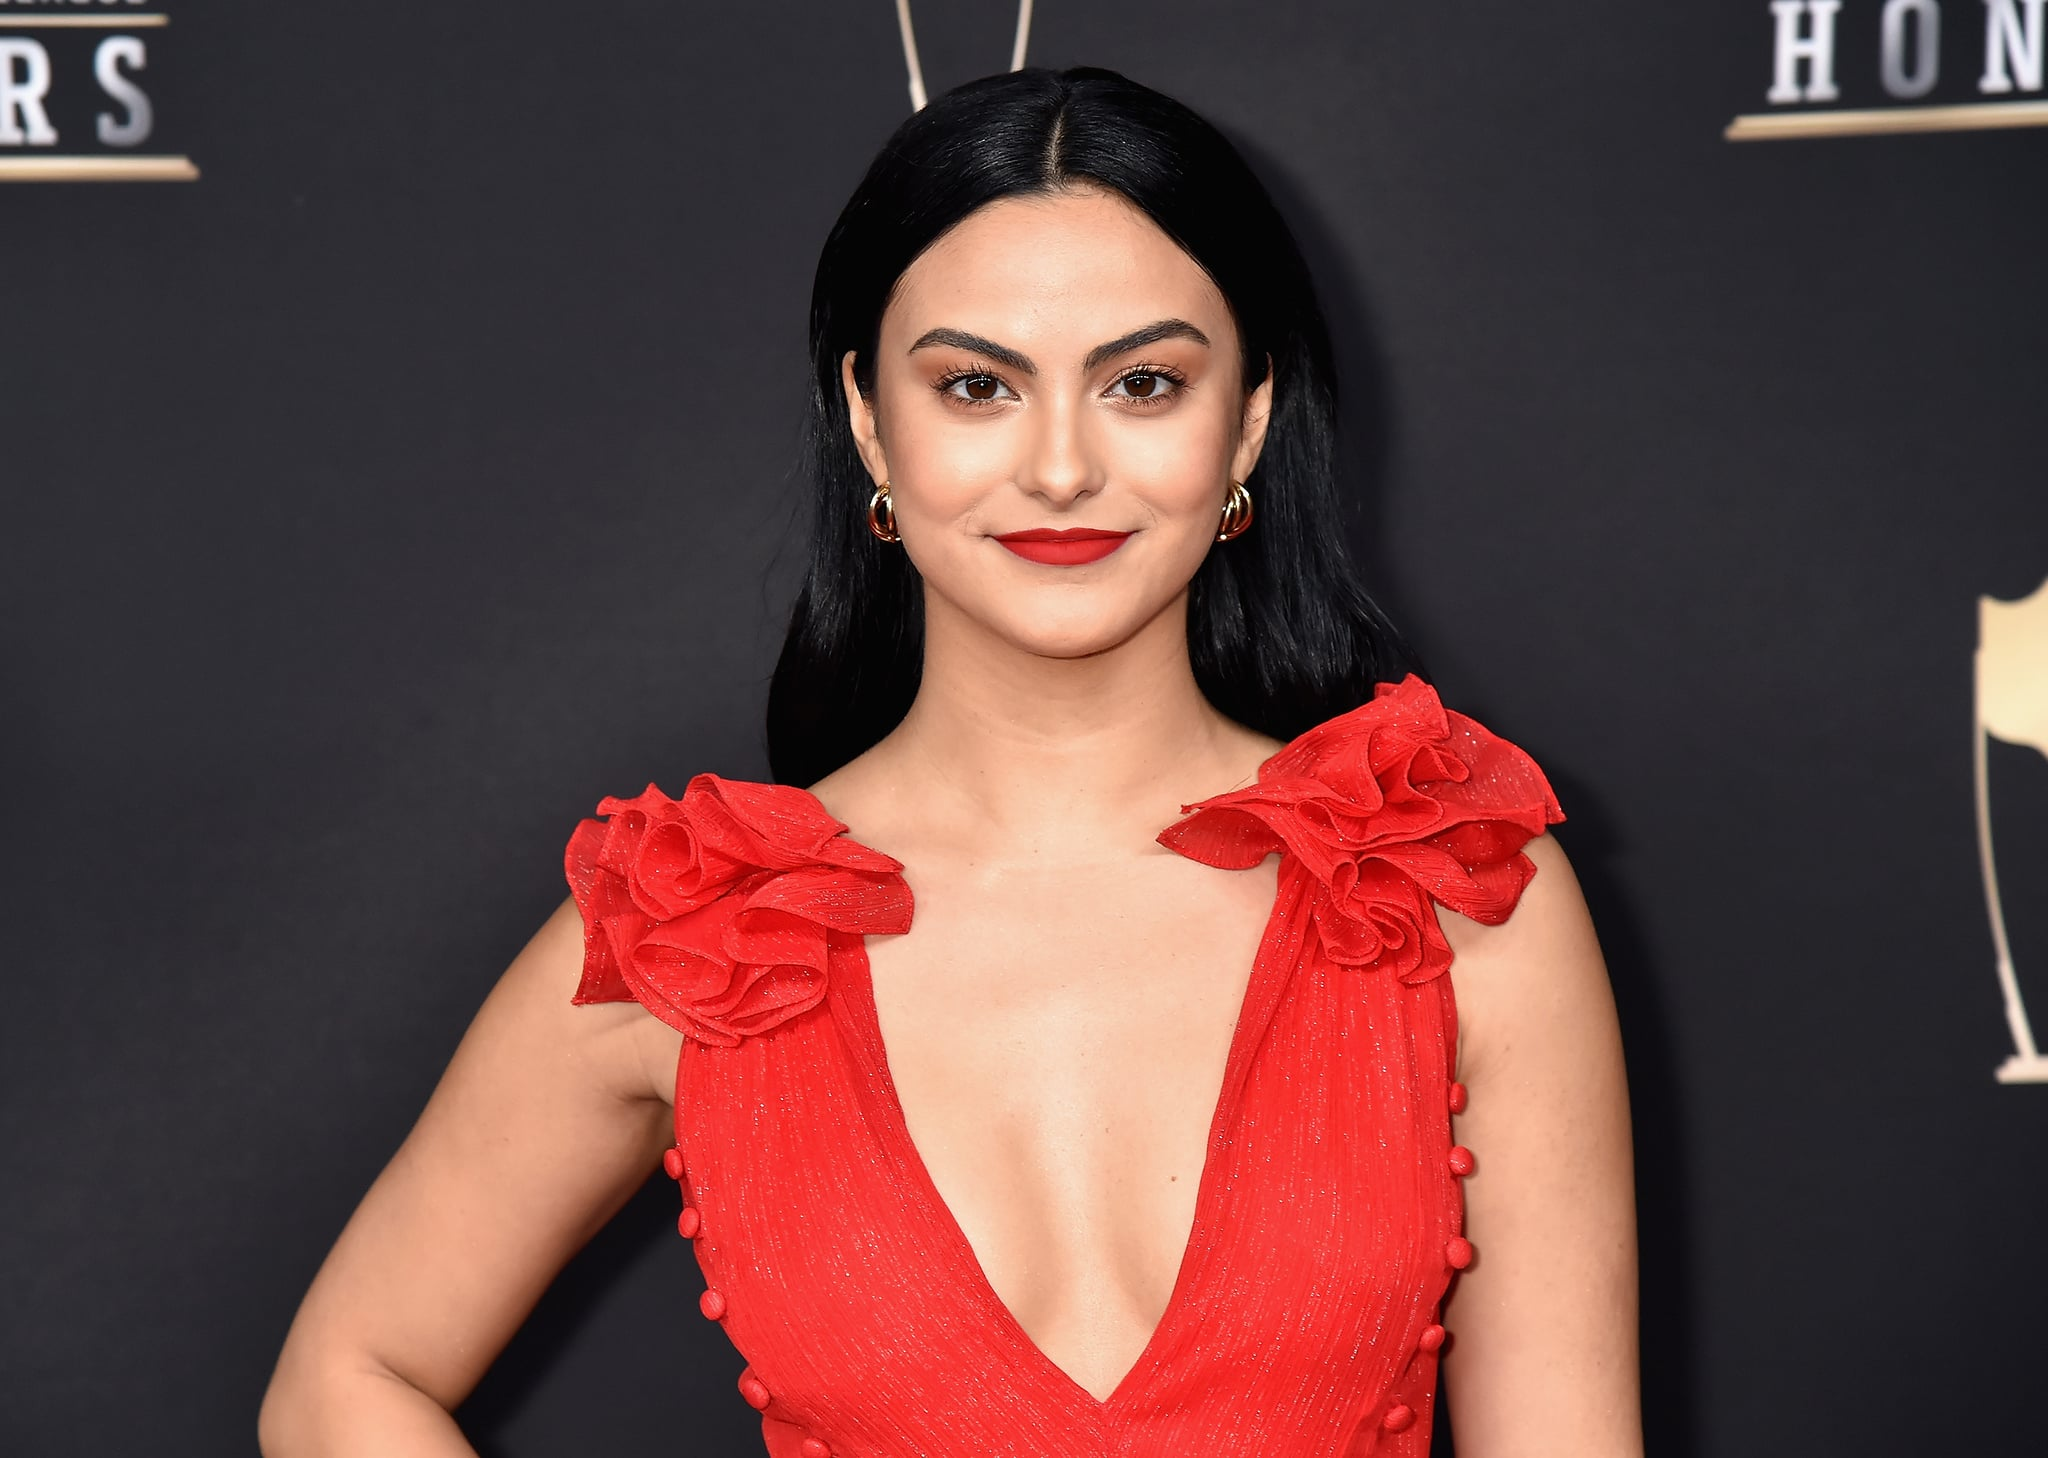 ATLANTA, GA - FEBRUARY 02:  Camila Mendes attends the 8th Annual NFL Honors at The Fox Theatre on February 2, 2019 in Atlanta, Georgia.  (Photo by Jeff Kravitz/FilmMagic)